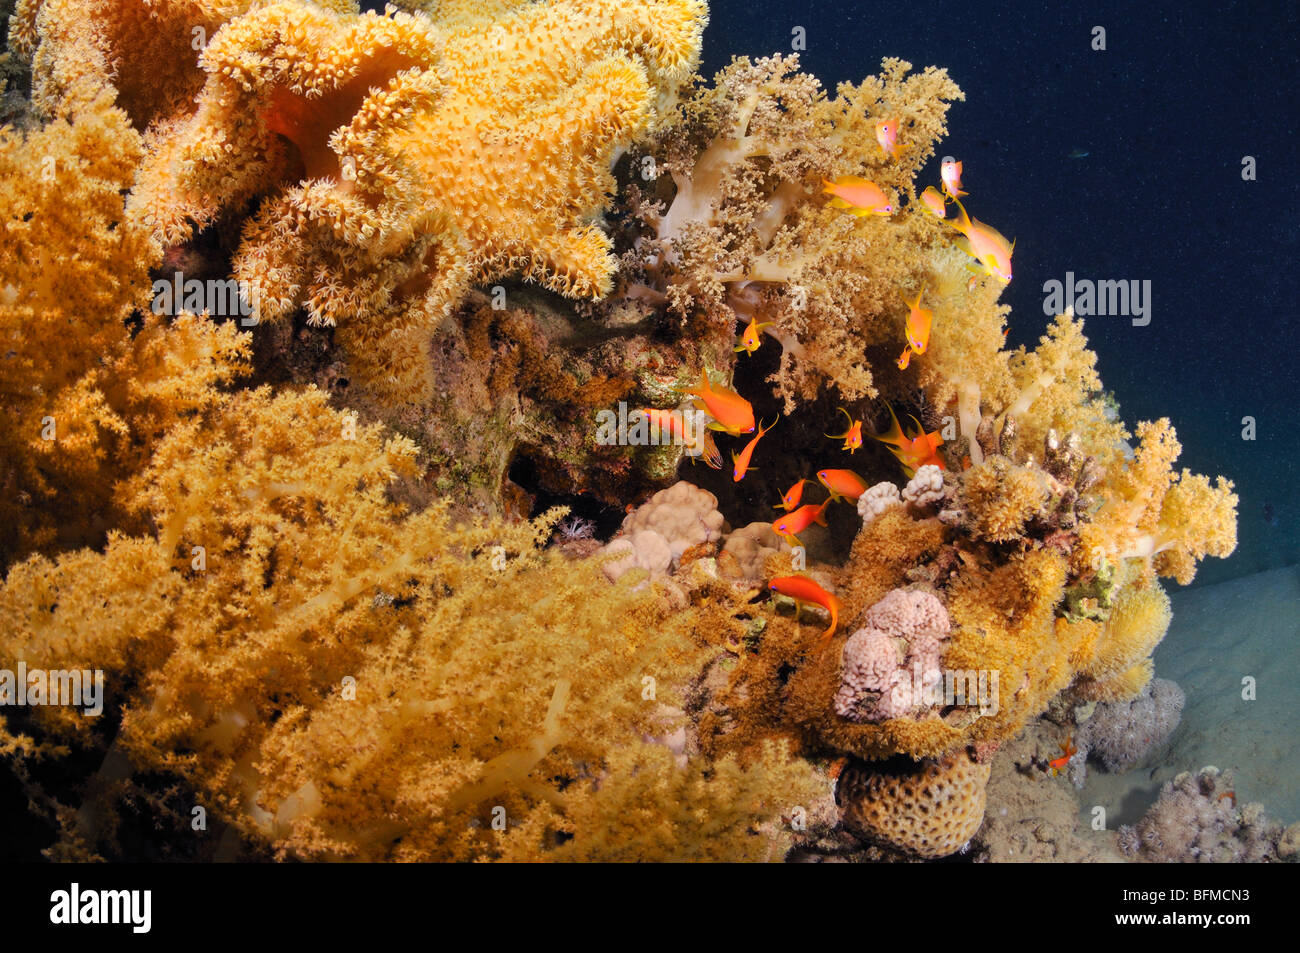 Soft alcyonarian and leather soft corals with anthias fish on coral reef, 'Red Sea' - Stock Image